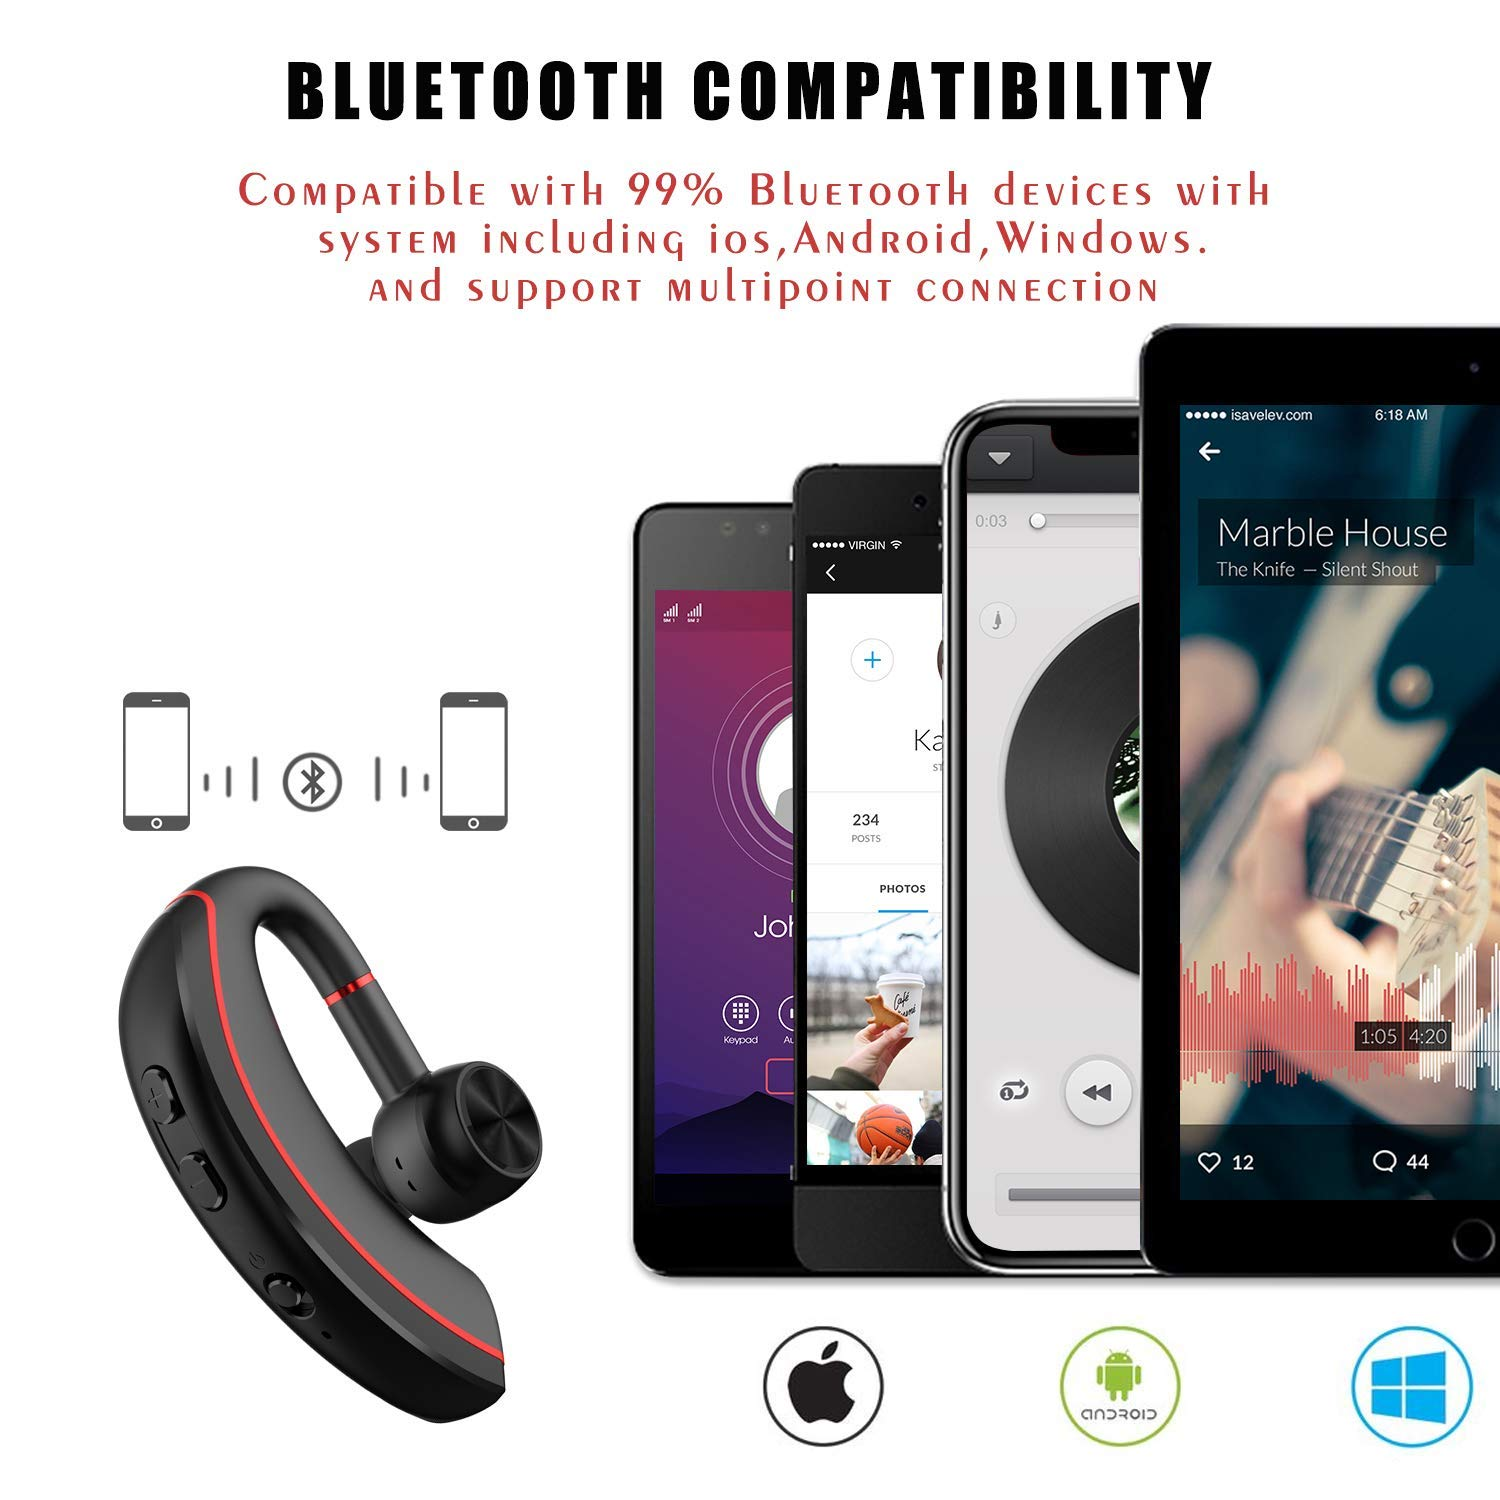 Bluetooth Headset Wireless Business Bluetooth V4.2 Earpiece Ultralight HD Headphones Hands-Free Earphones with Noise Cancellation Microphone Wide Compatible with Cell Phones for Office/Work Out/Truck